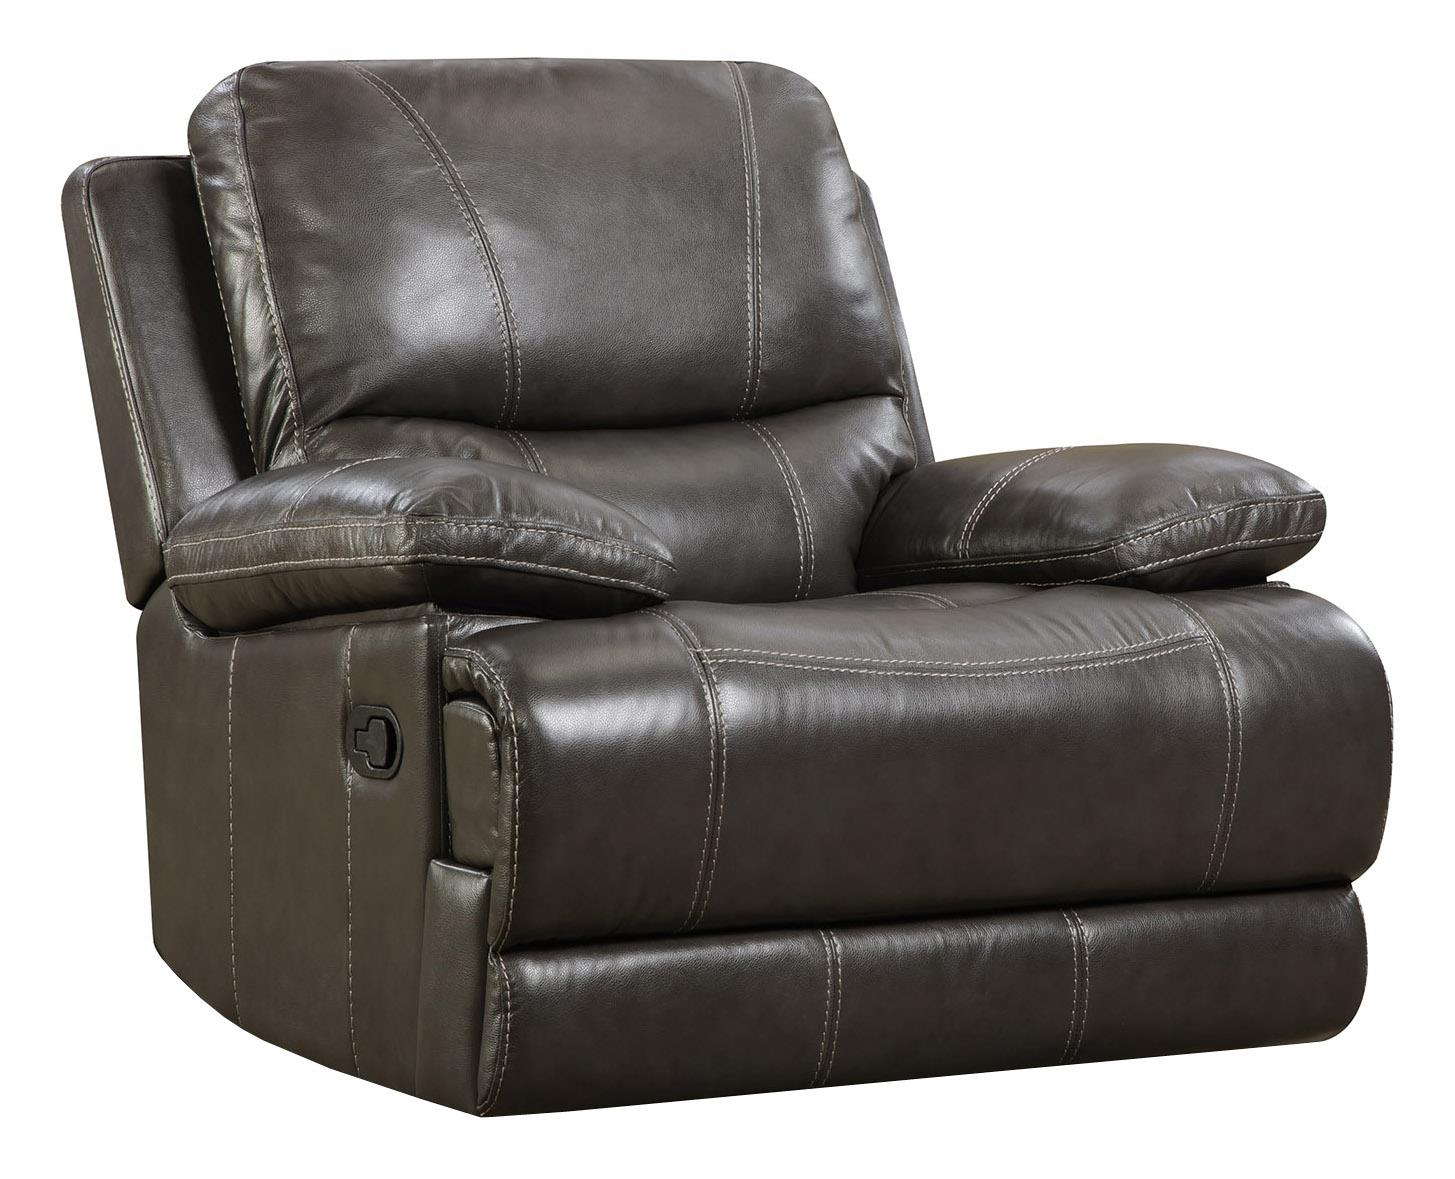 Corinthian Brooklyn Charcoal Rocker Recliner - Item Number: 42801-10-Made_Out_Grey